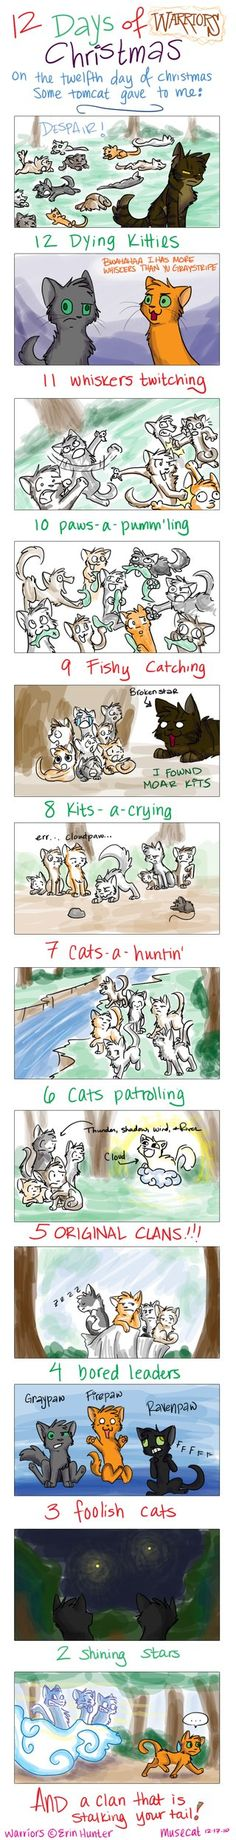 12 days of warrior cats christmas😂 Warrior Cats Comics, Warrior Cats Funny, Warrior Cat Memes, Warrior Cats Series, Warrior Cats Books, Warrior Cats Art, Cat Comics, Warriors Memes, Love Warriors